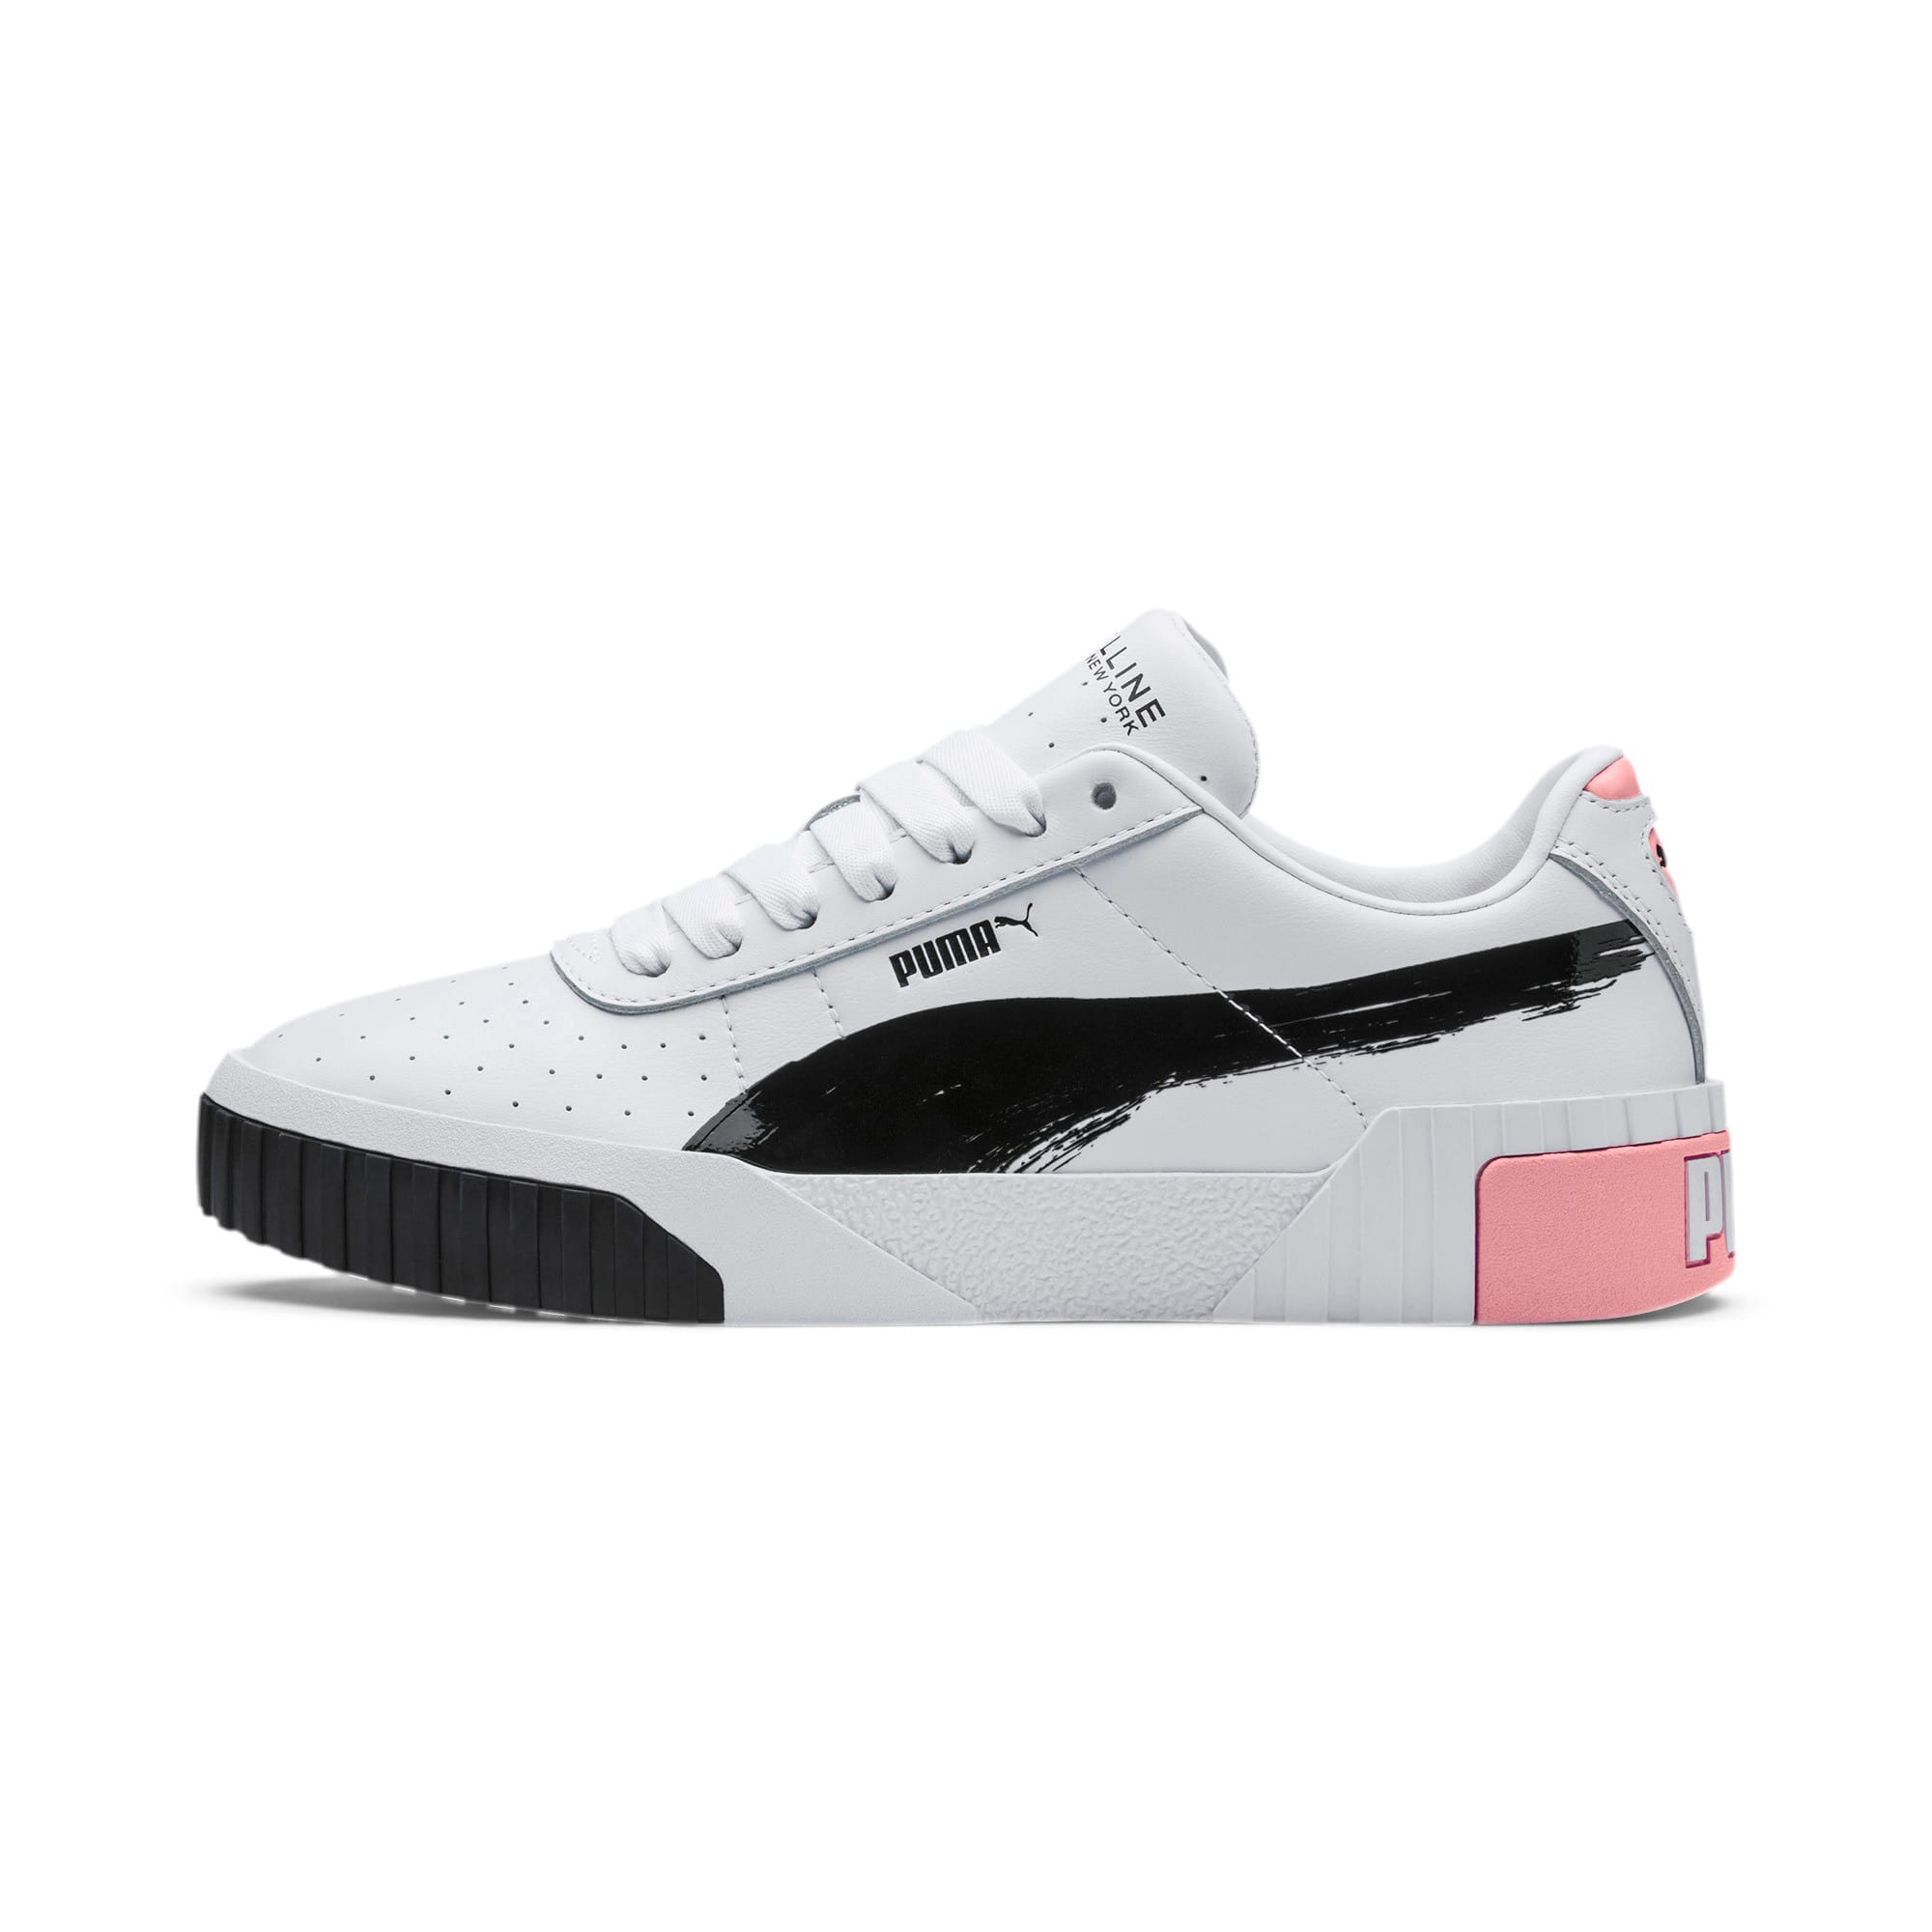 Thumbnail 1 of PUMA x MAYBELLINE Cali Women's Trainers, Puma White-Puma Black, medium